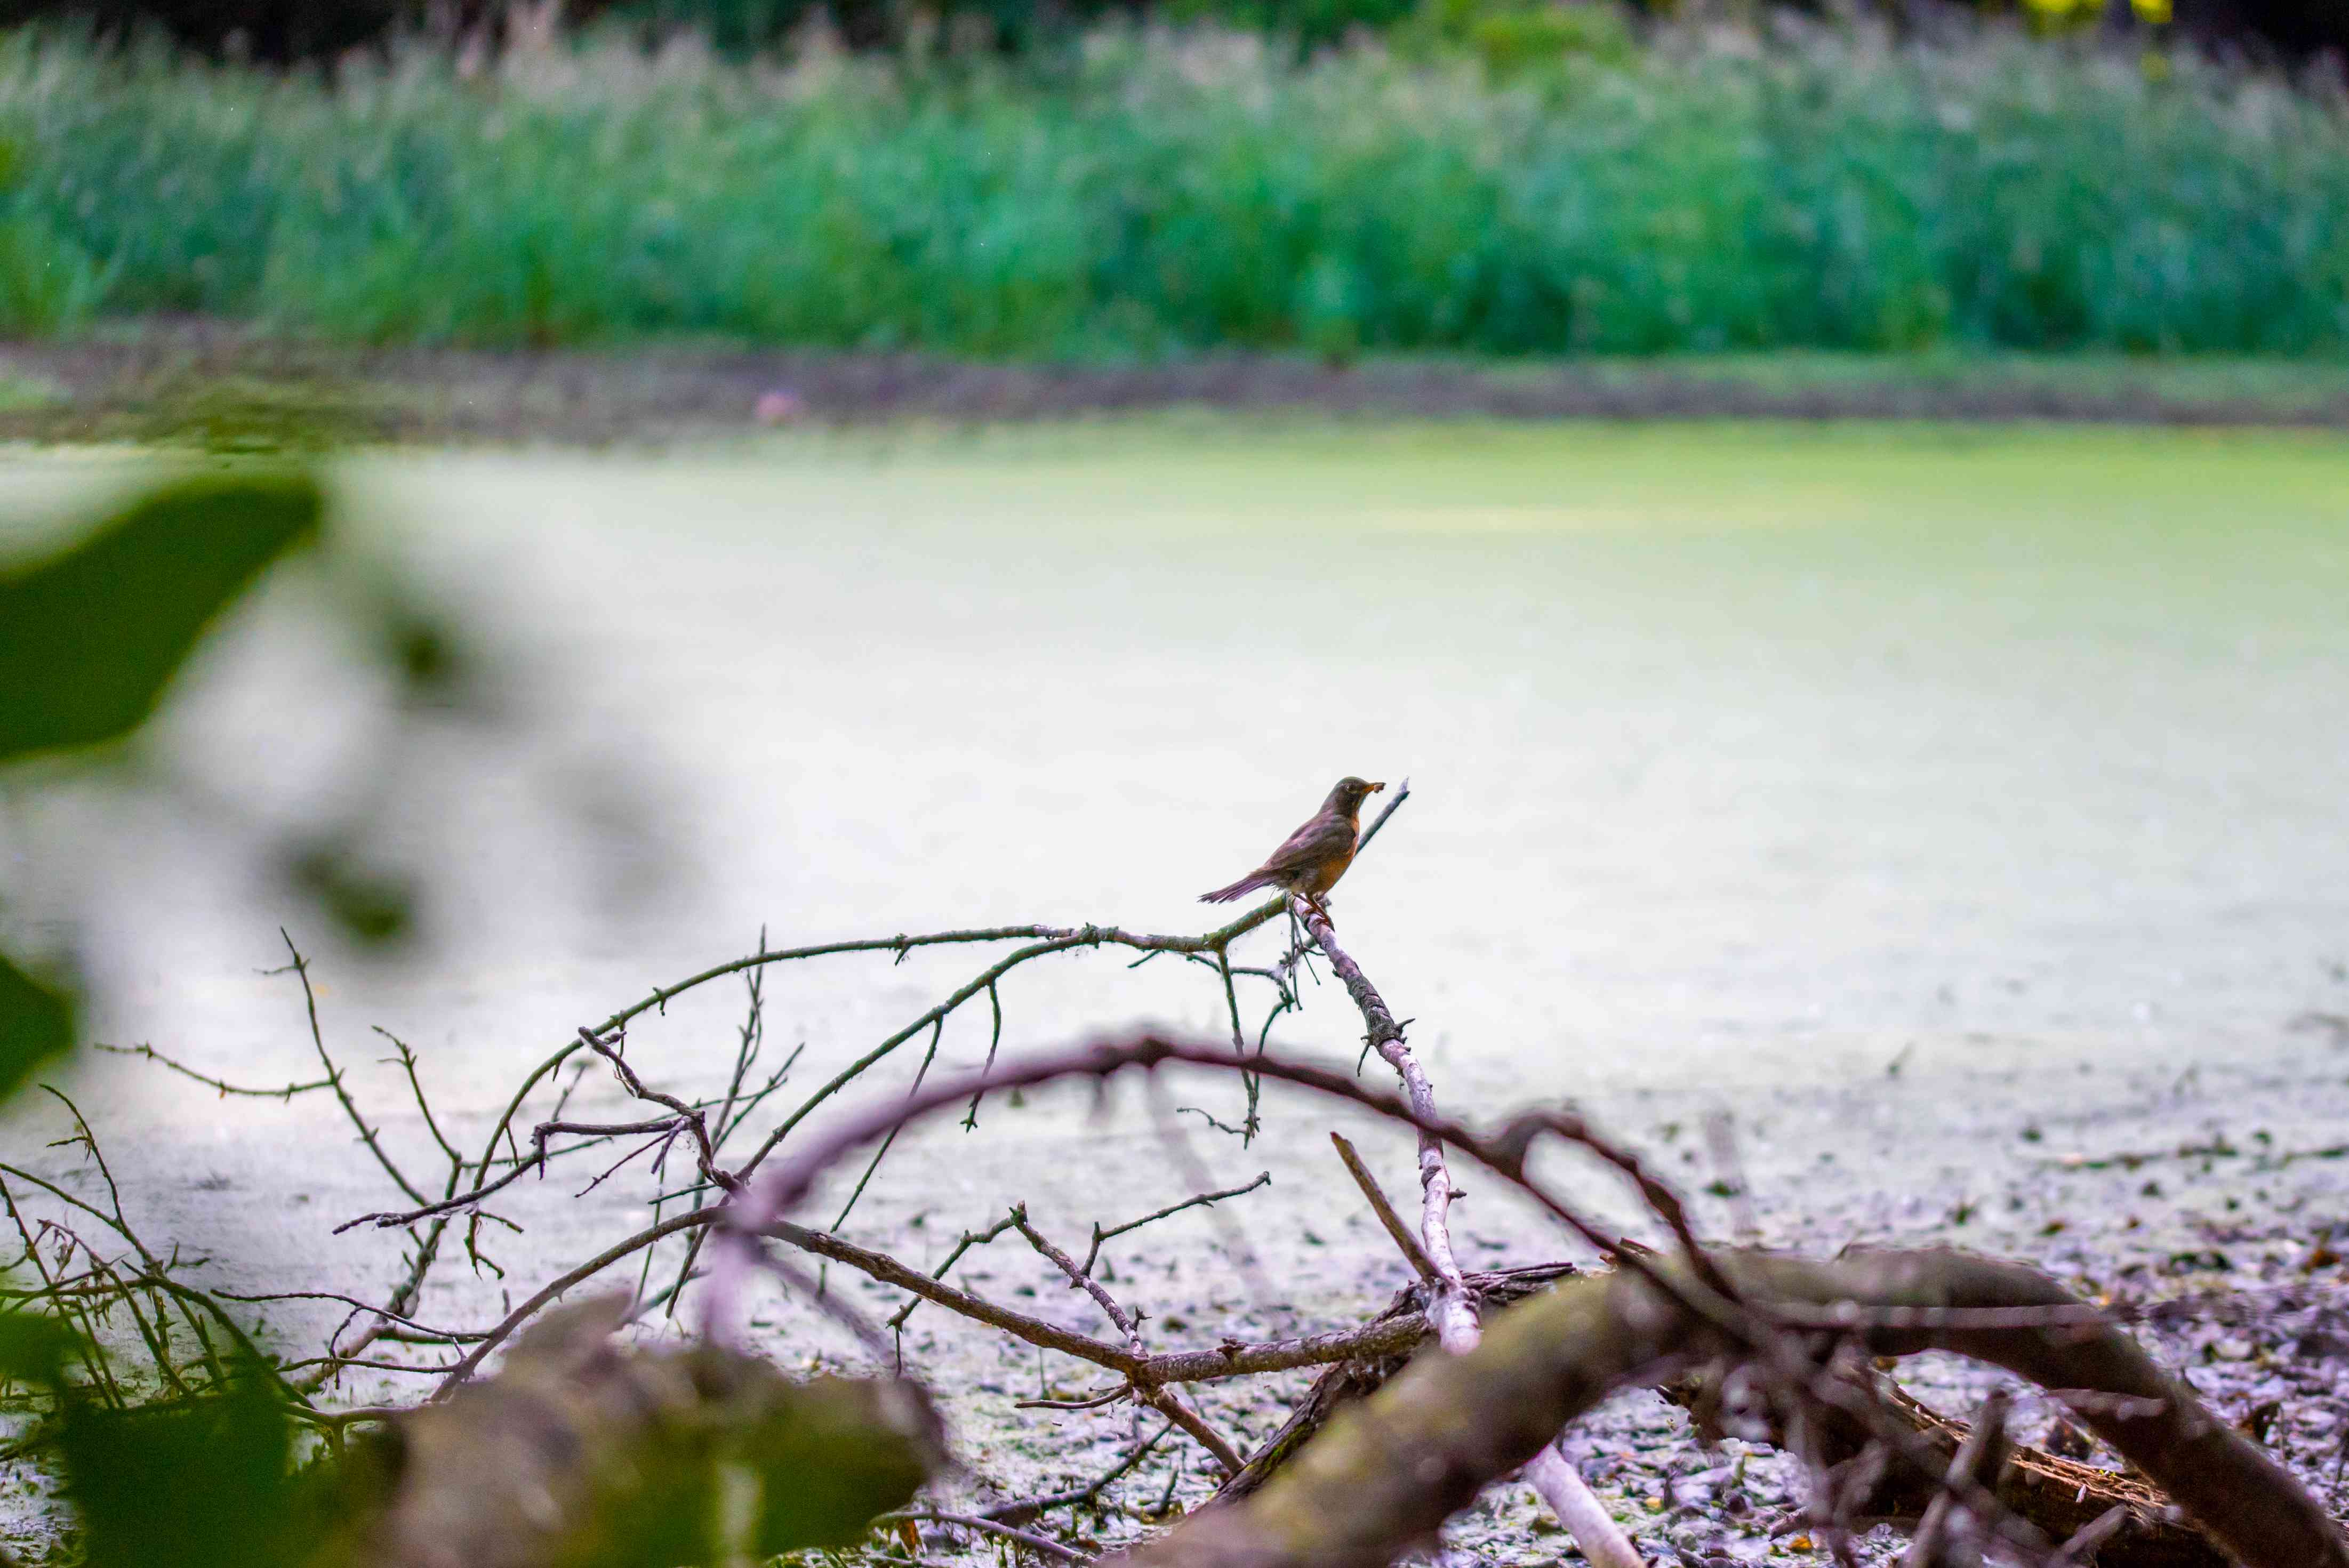 small brown bird sits on branch in foreground, blurred high grass behind